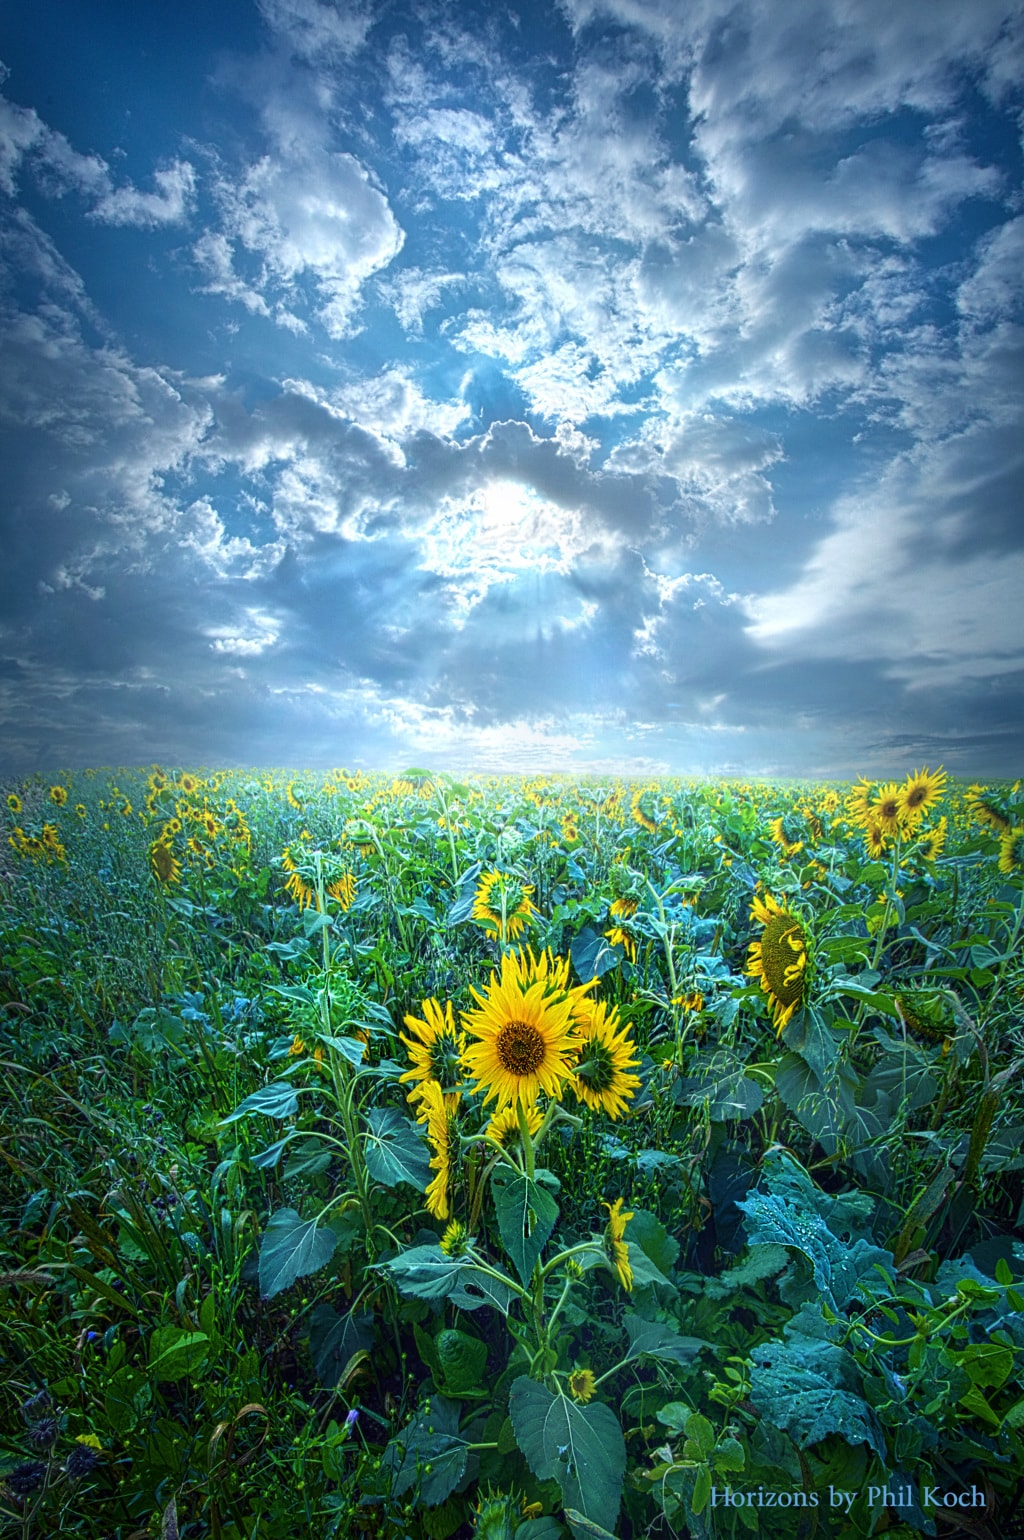 Horizons by Phil Koch, turning landscapes in to natural port... via Phil Koch